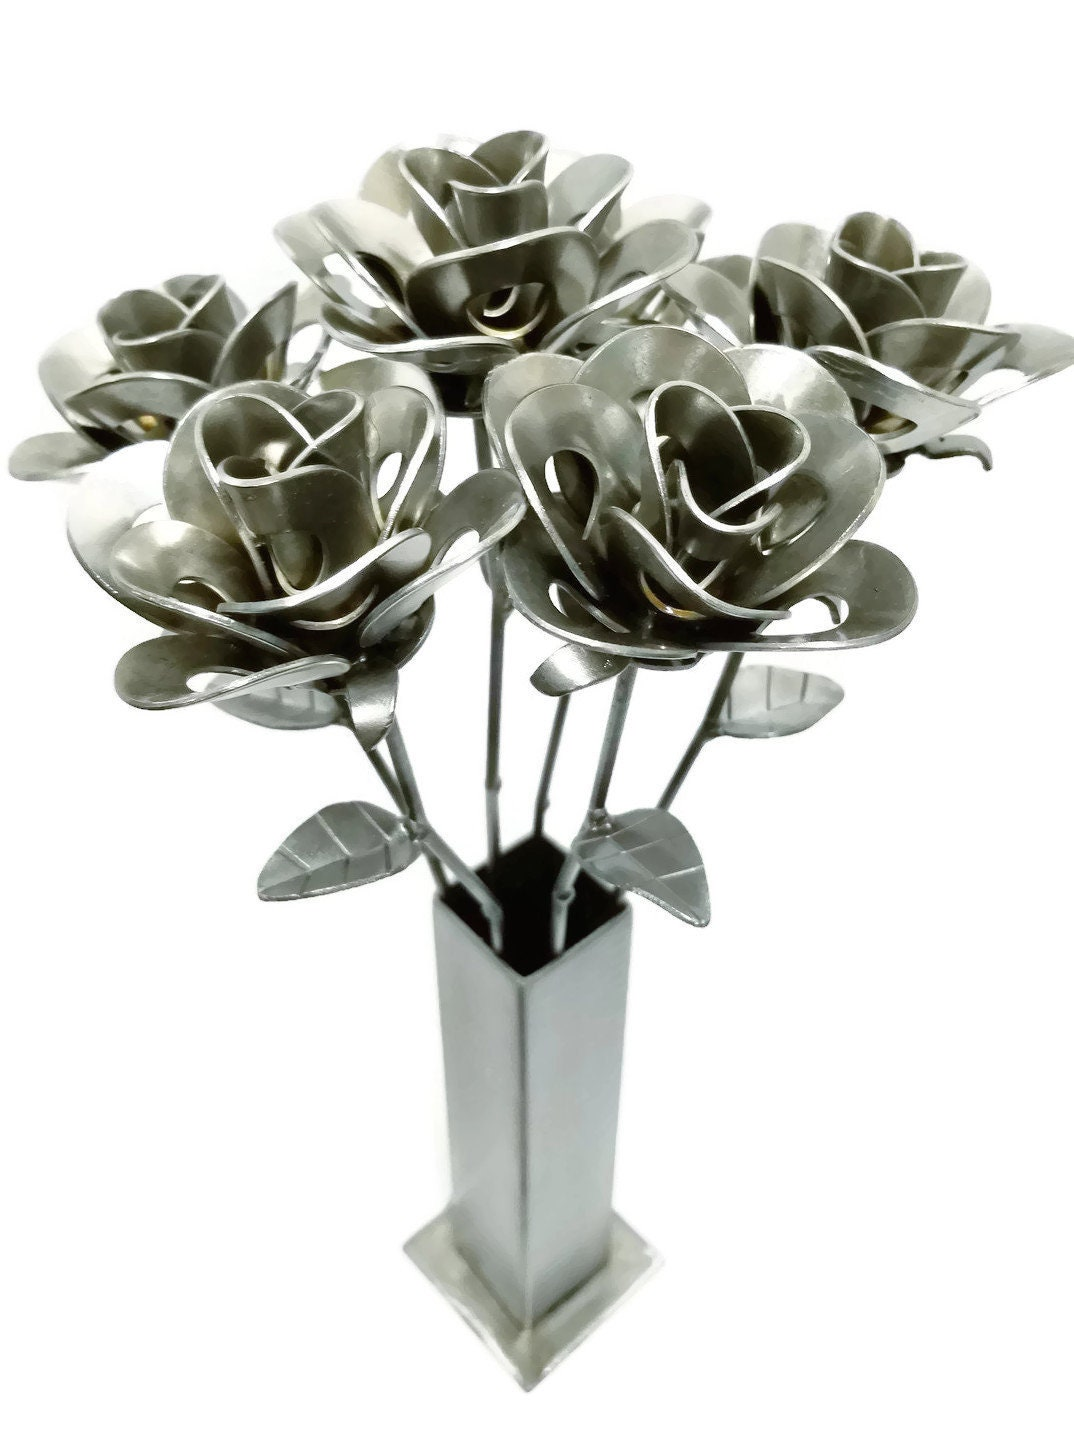 Six Metal Steel Forever Roses And Vase Created By Welding Scrap Steampunk Style Making Unique Gifts Modern Rustic Home Decor